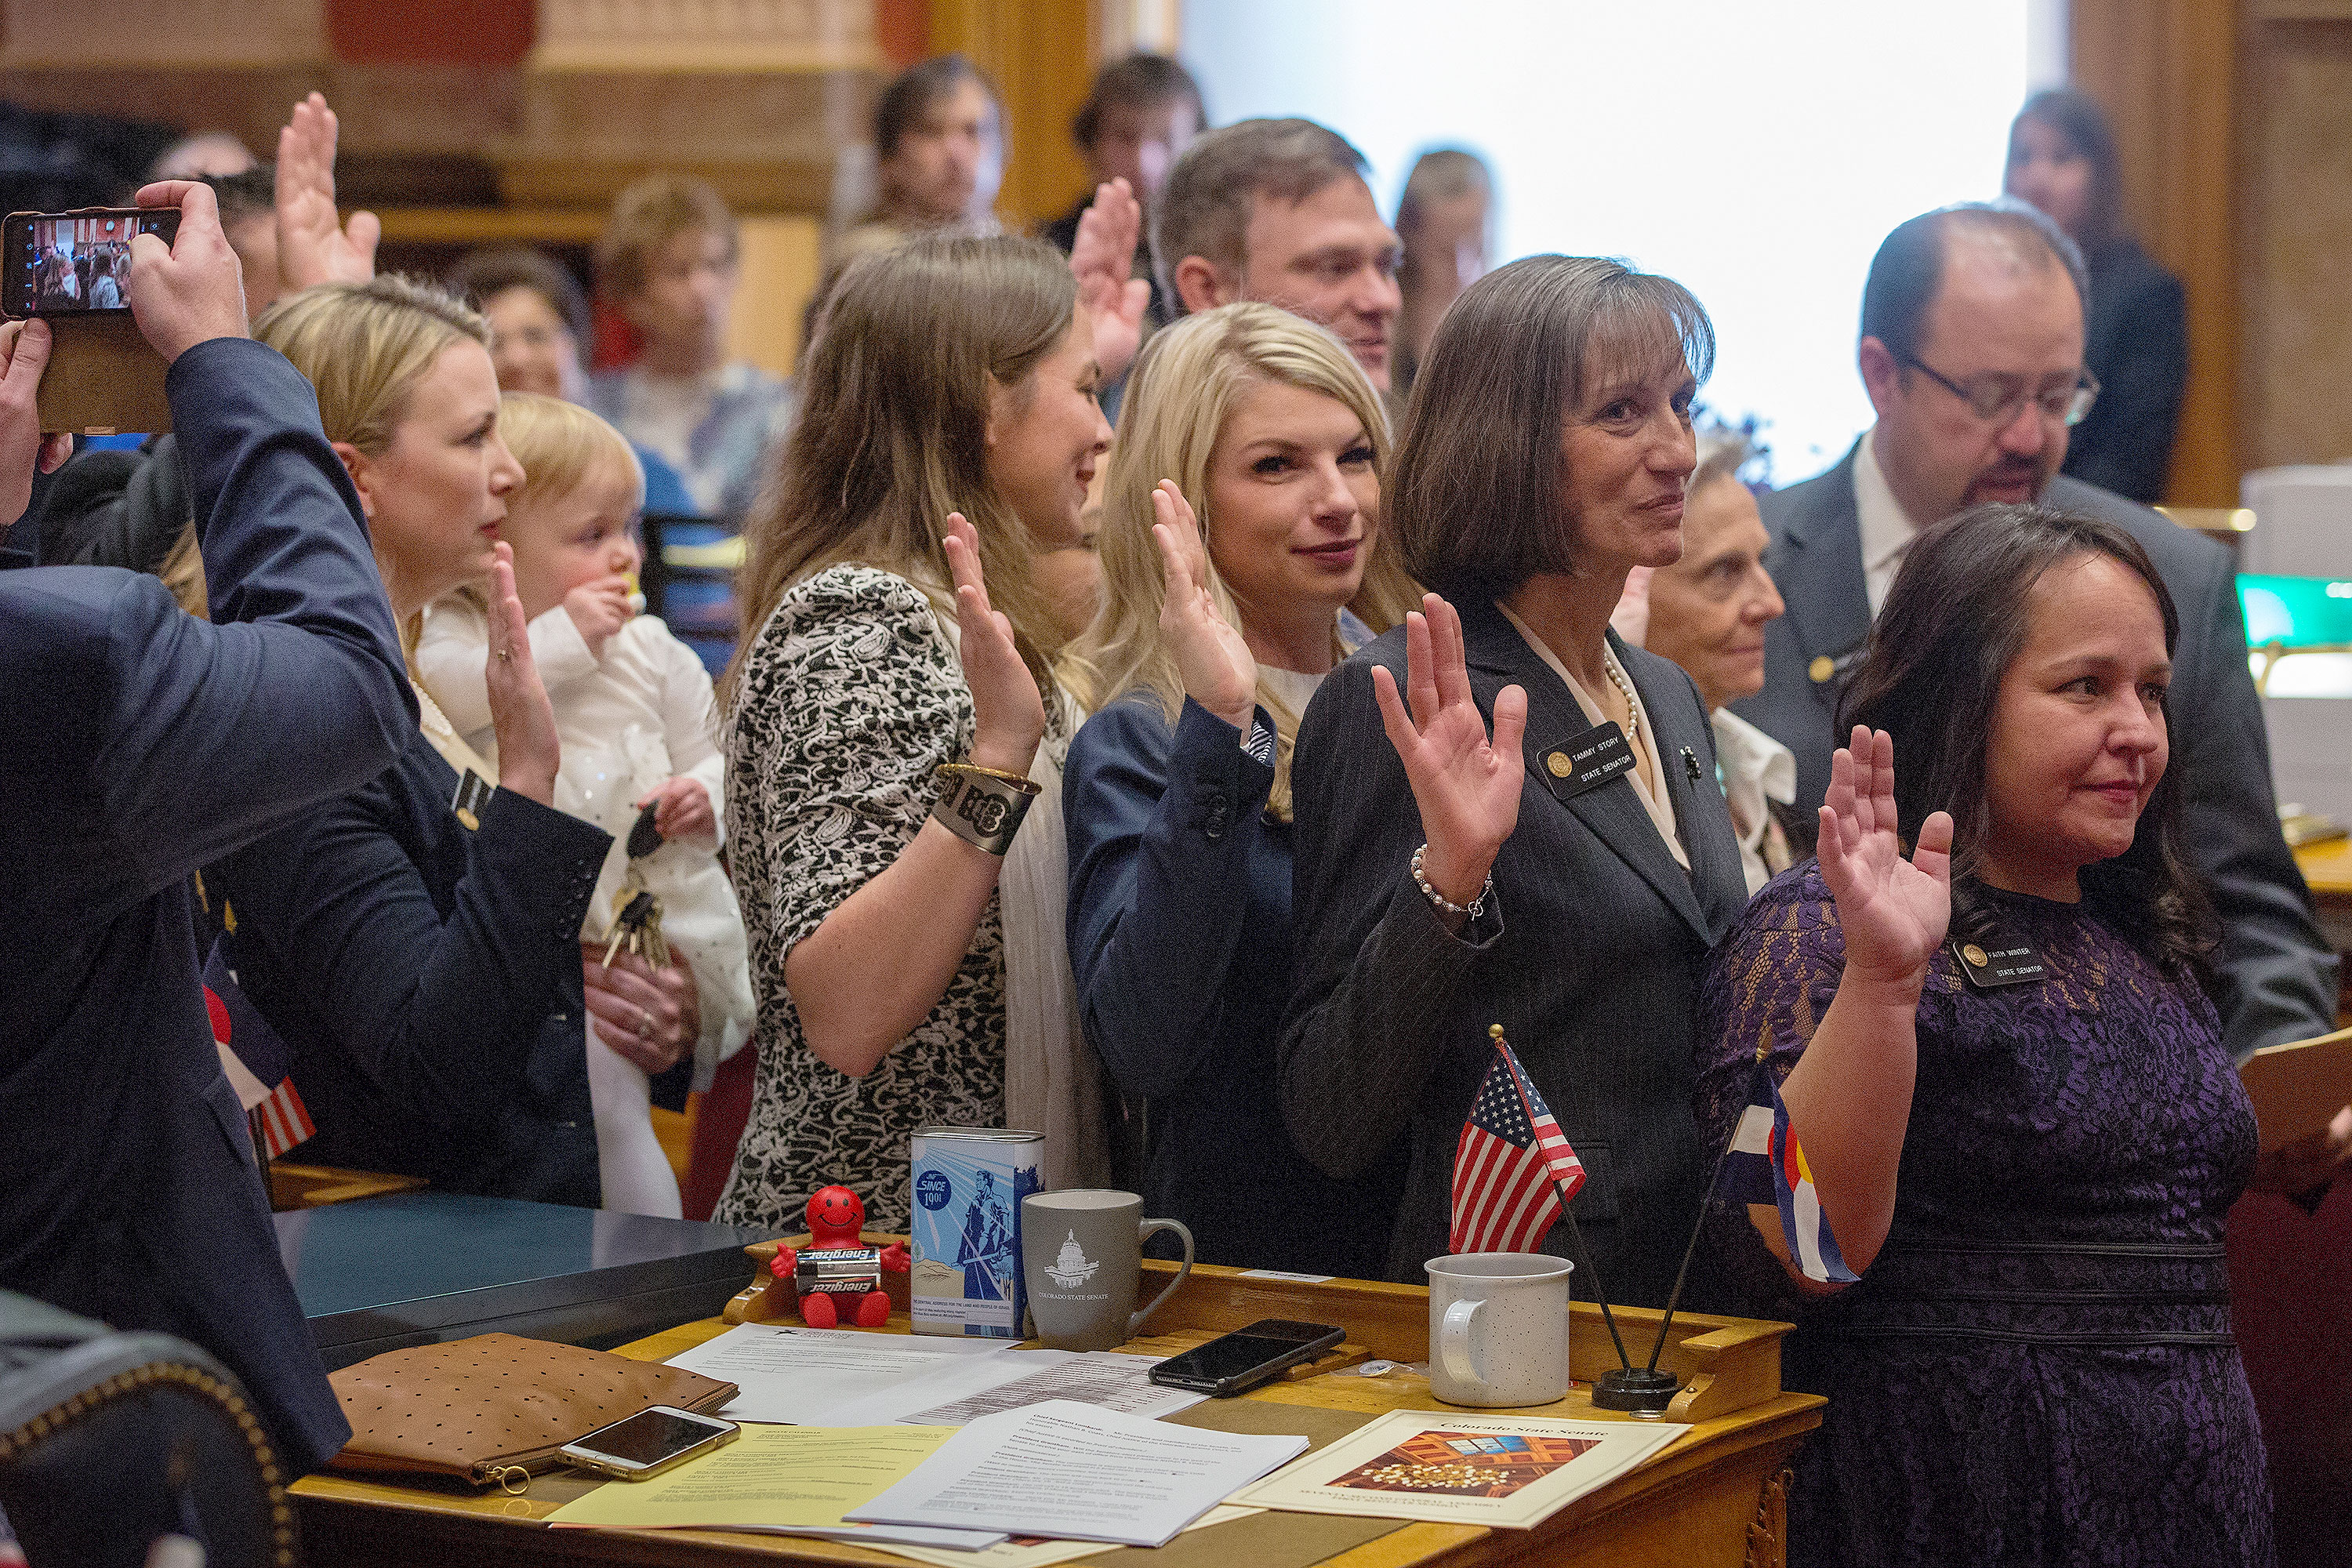 The five newly elected women, all Democrats, who helped theirparty regain control of the Senate. From left: Jessie Danielson holding daughter Isabelle Beth Kabza, Kerry Donovan,Brittany Pettersen, Tammy Story and Faith Winter. Pettersen is the target of a recall effort.